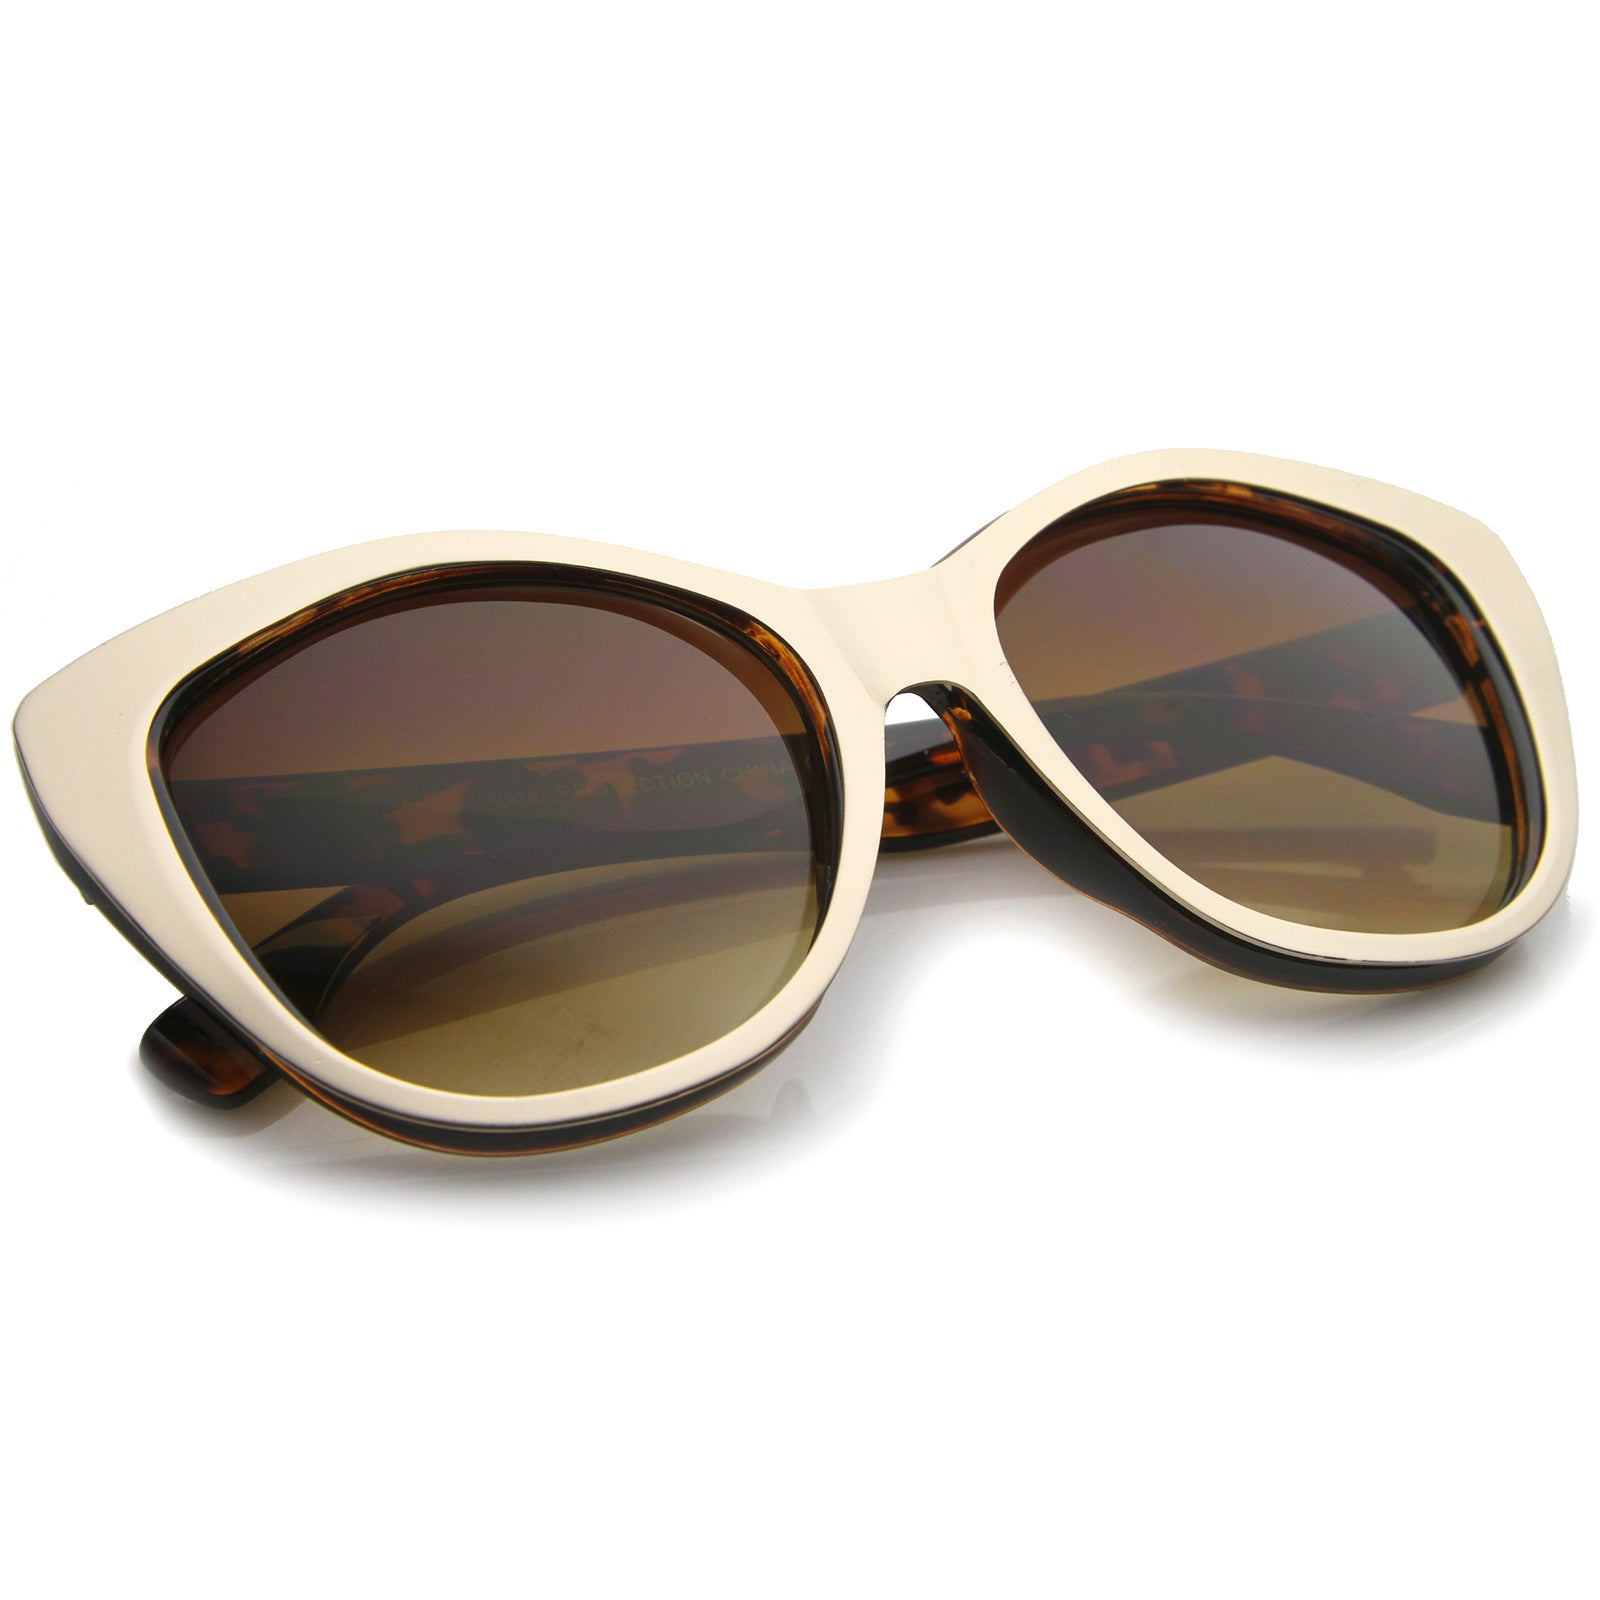 Women's High Fashion Two-Toned Tinted Lens Oversize Cat Eye Sunglasses 55mm - sunglass.la - 16